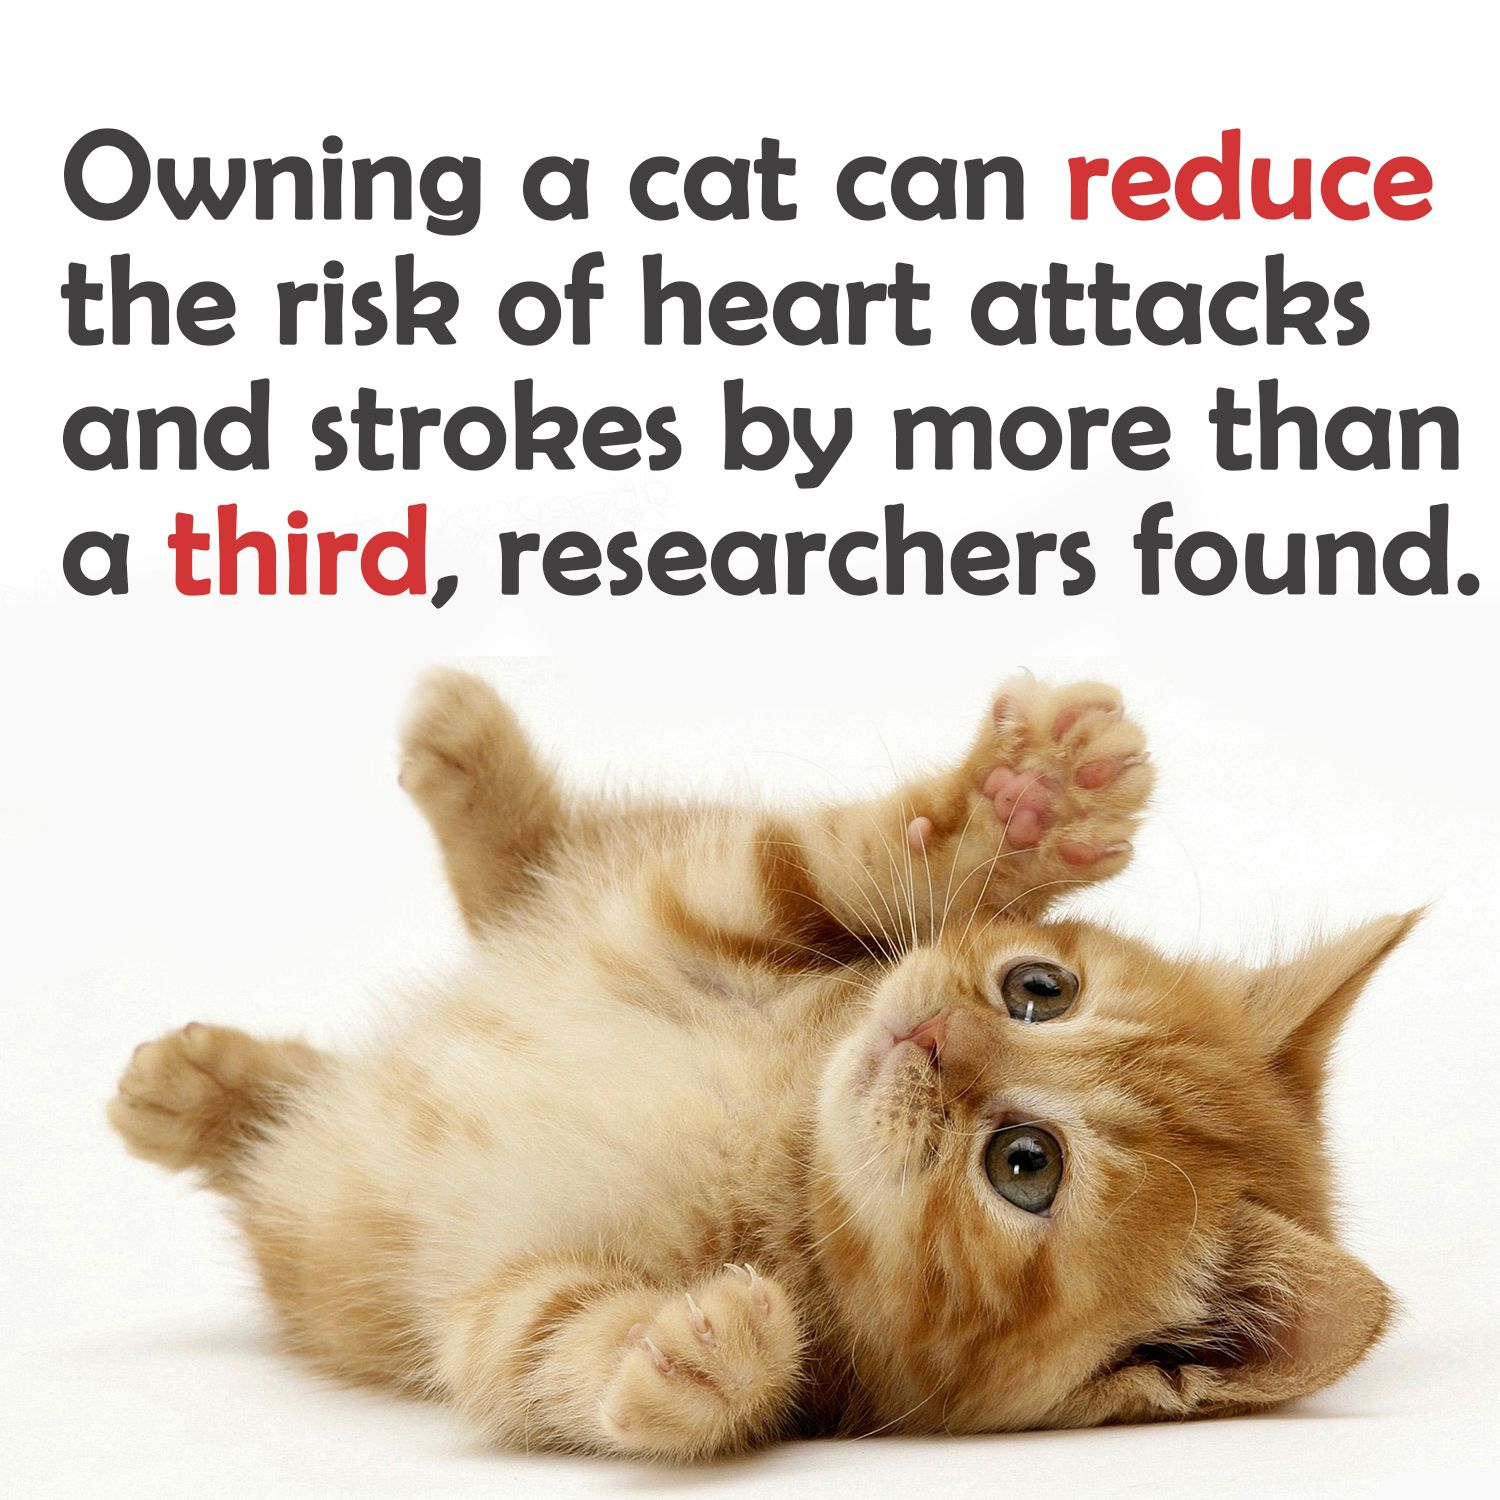 Cat Facts 33 things about cats you didn't know